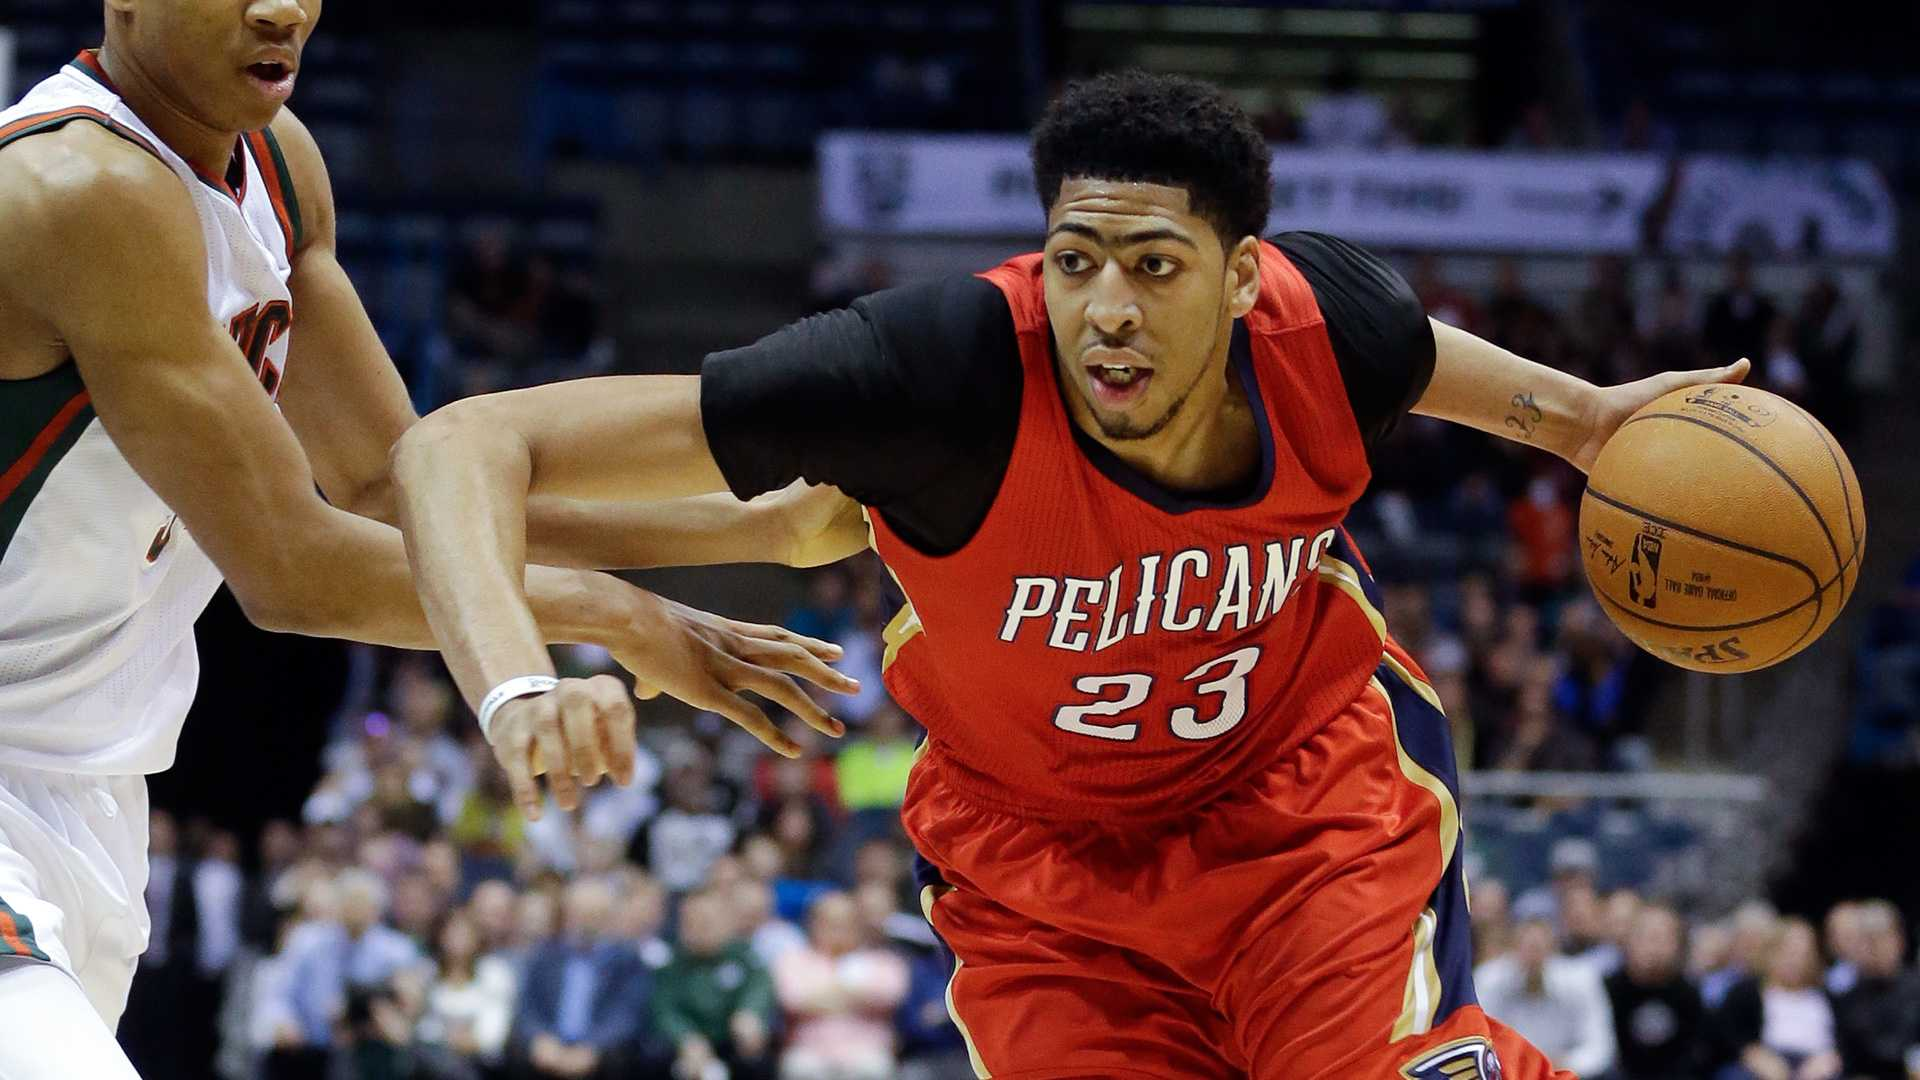 Kentucky basketball: Anthony Davis, DeMarcus Cousins named NBA All-Star Game starters